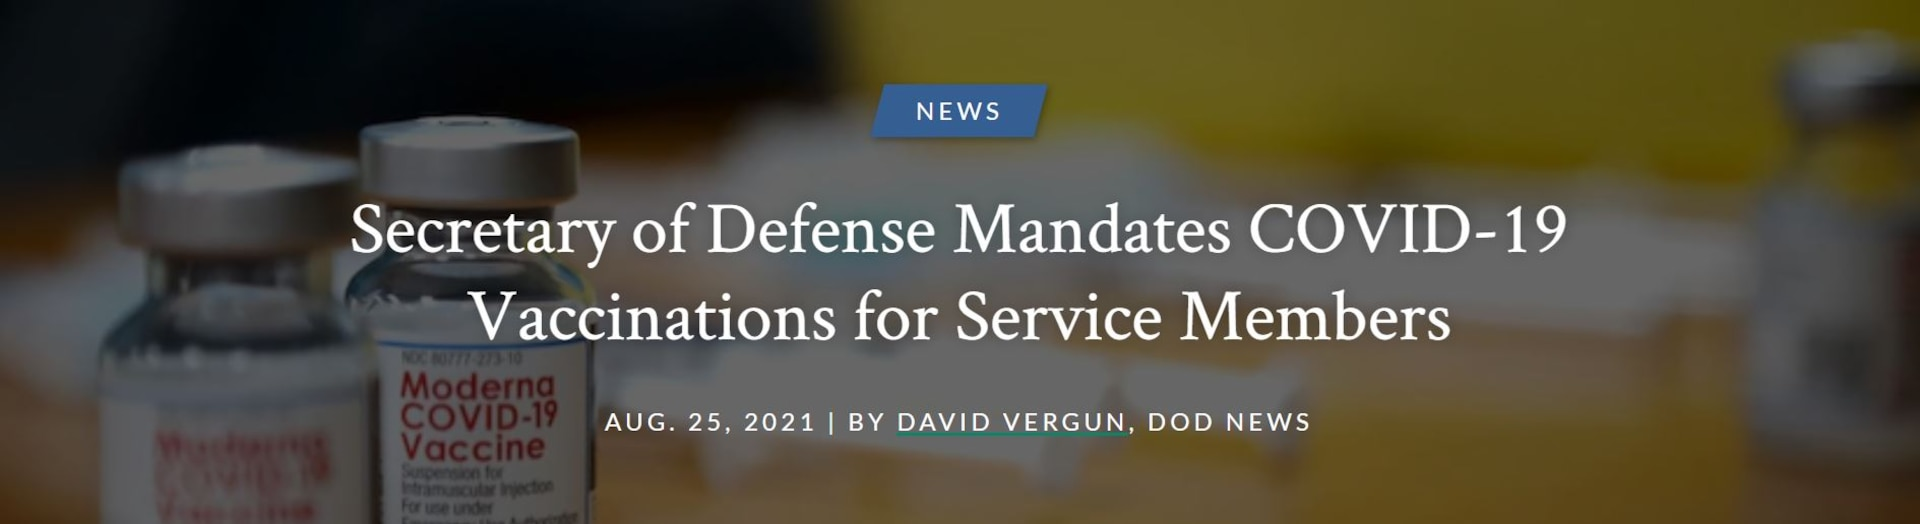 Secretary of Defense Lloyd J. Austin III yesterday issued a memorandum directing mandatory COVID-19 vaccinations for service members, a Pentagon official said today. John F. Kirby, Pentagon press secretary, said only Food and Drug Administration-approved vaccines will be mandatory.